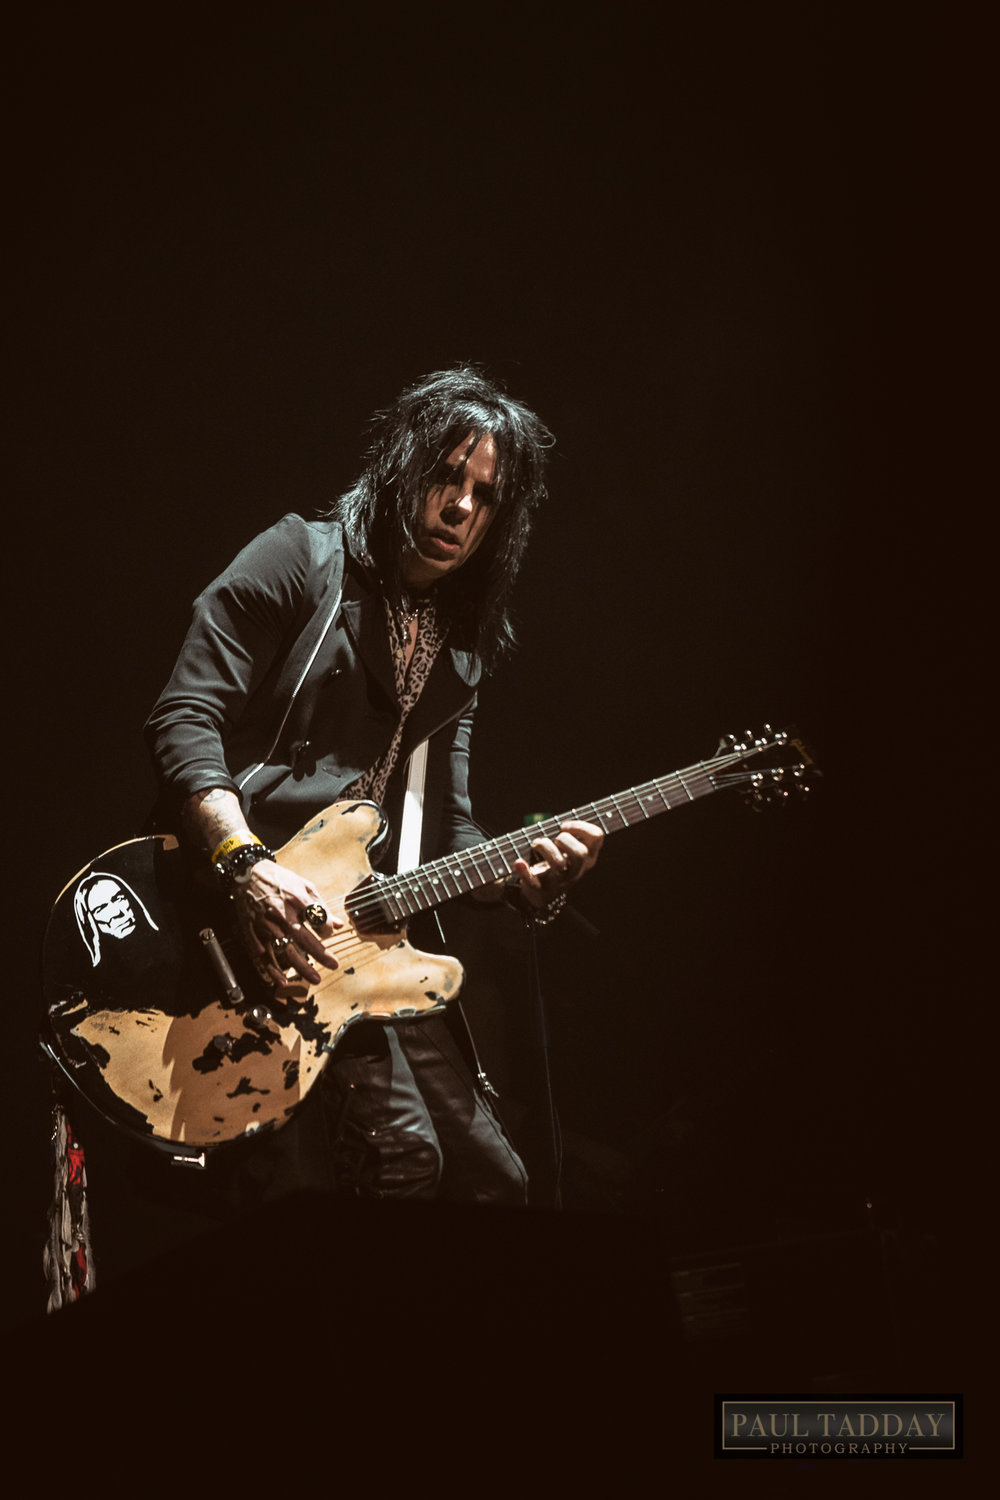 alice cooper - melbourne - paul tadday photography - 201017 - 65.jpg